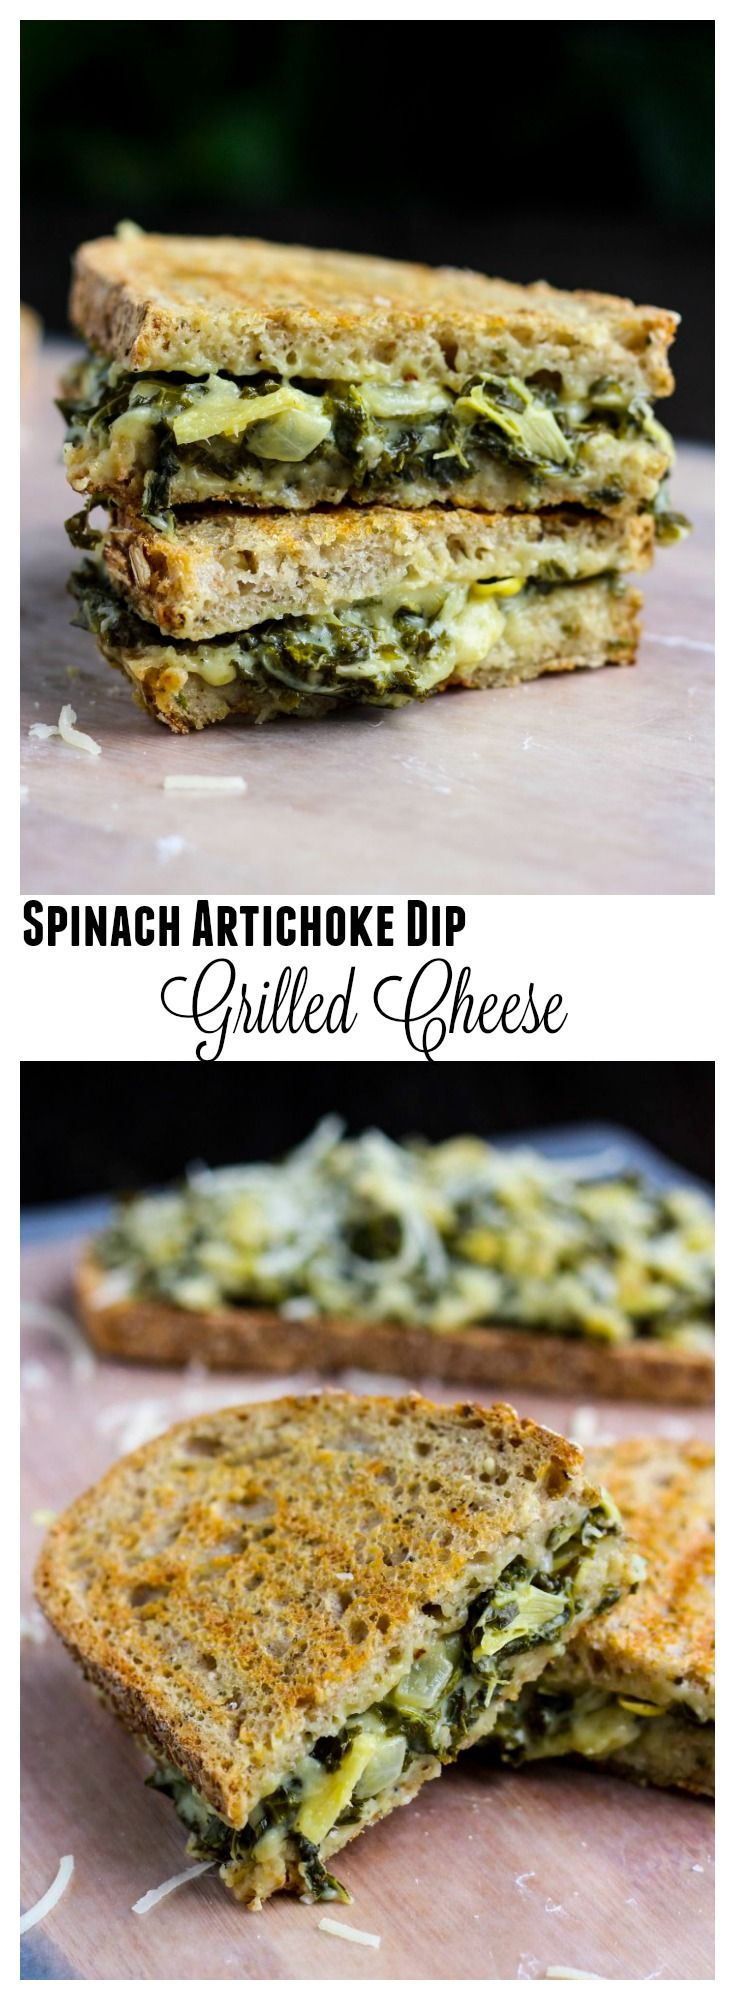 ****My FAVORITE grilled cheese sammie ever!!**** A crispy grilled cheese sandwich with a cheesy, creamy spinach artichoke dip filling.